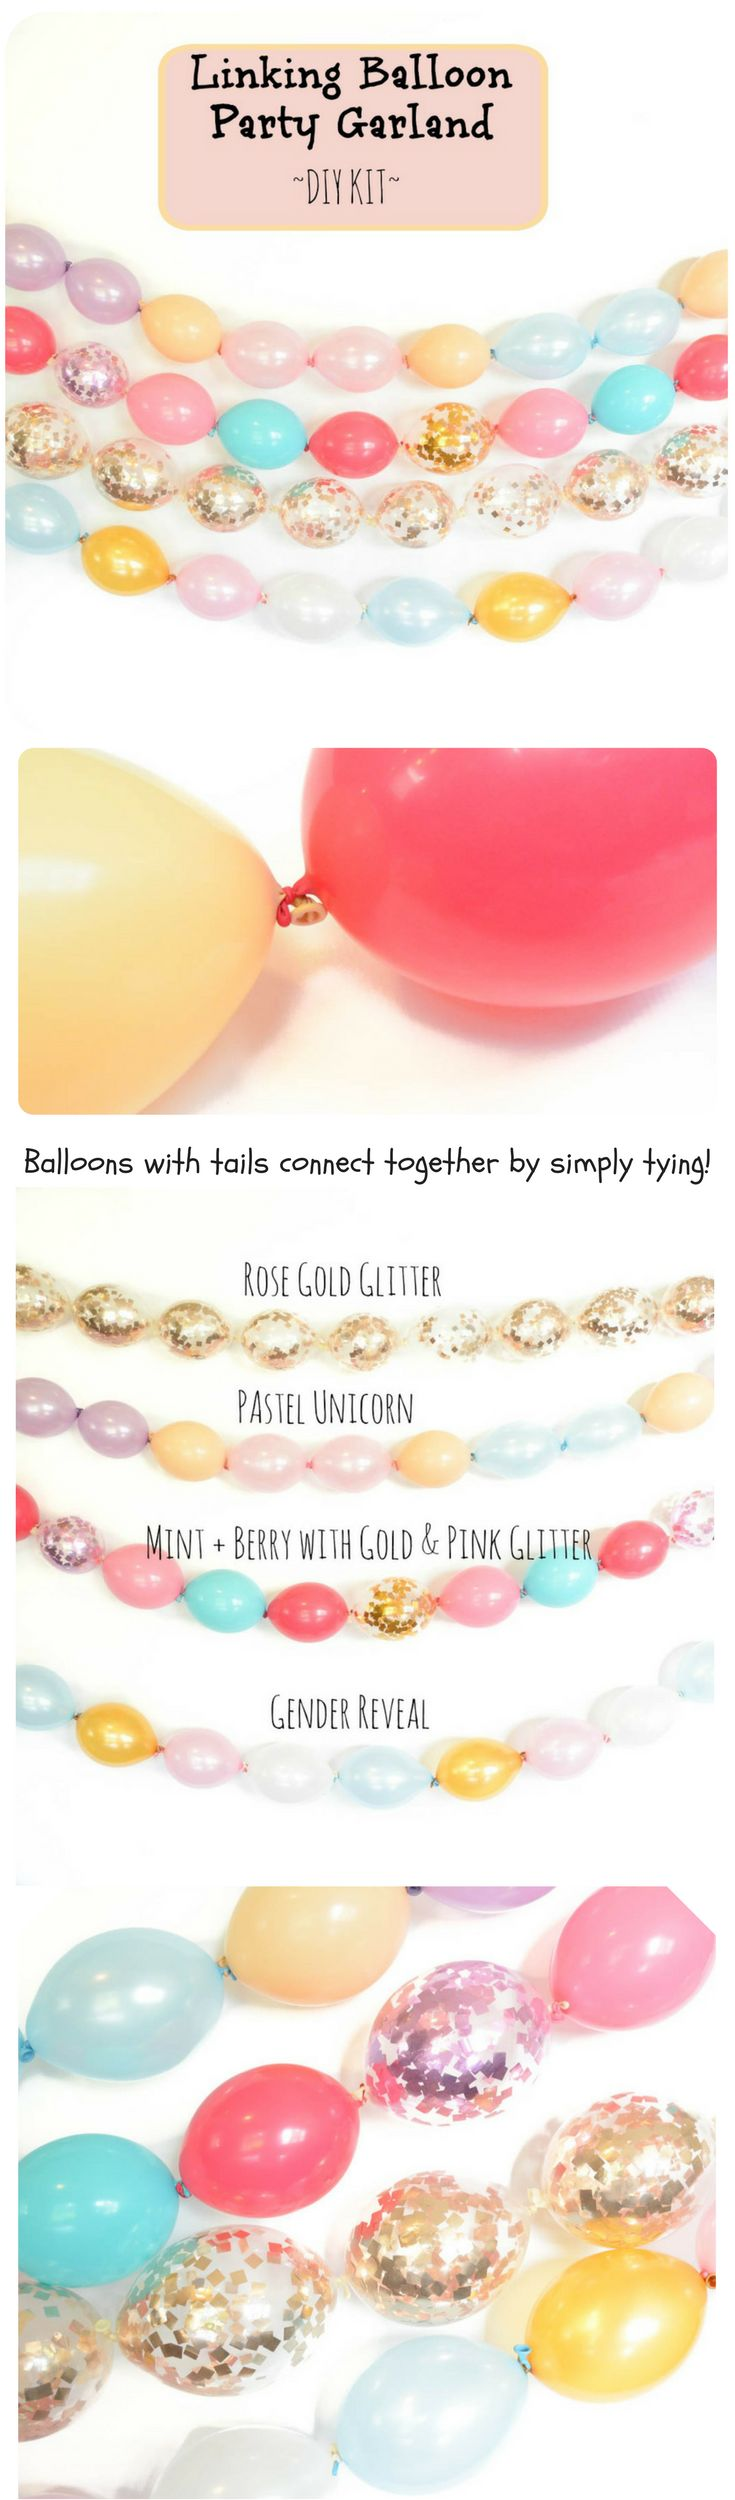 Make your own linking balloon chain party garland....adorable and easy party decor!  Customize your Party colors!  unicorn party, Pastels, Gender Reveal, and Rose gold glitter!